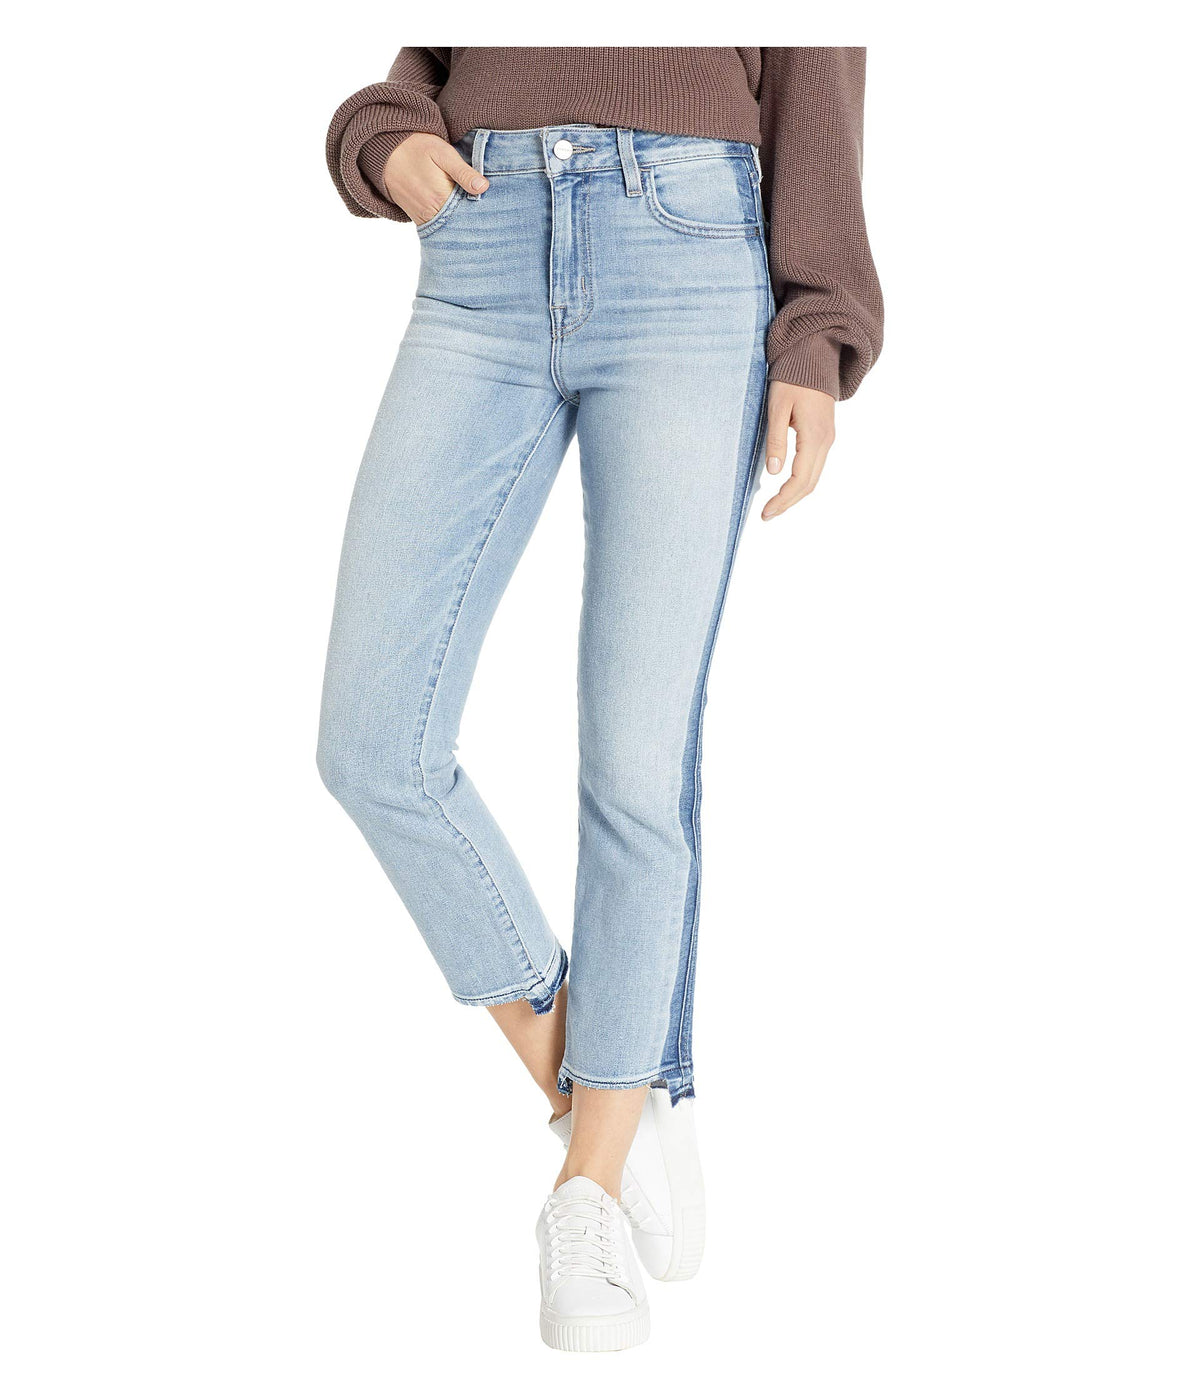 Modern High-Rise Crop Jeans with Indigo Shadow in Split Personality